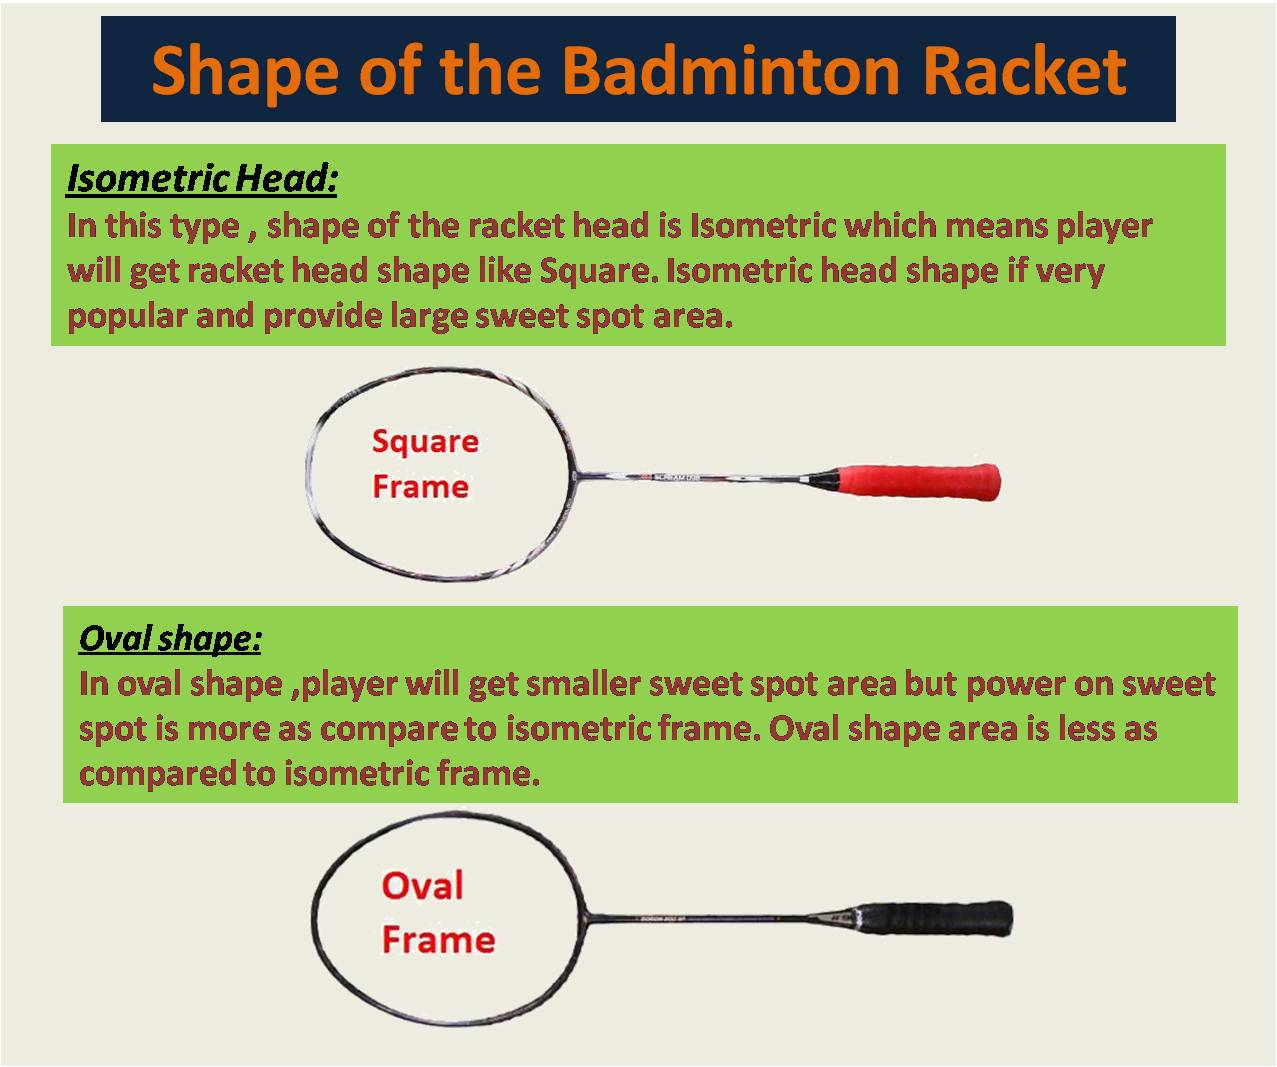 Shape of the Badminton Racket